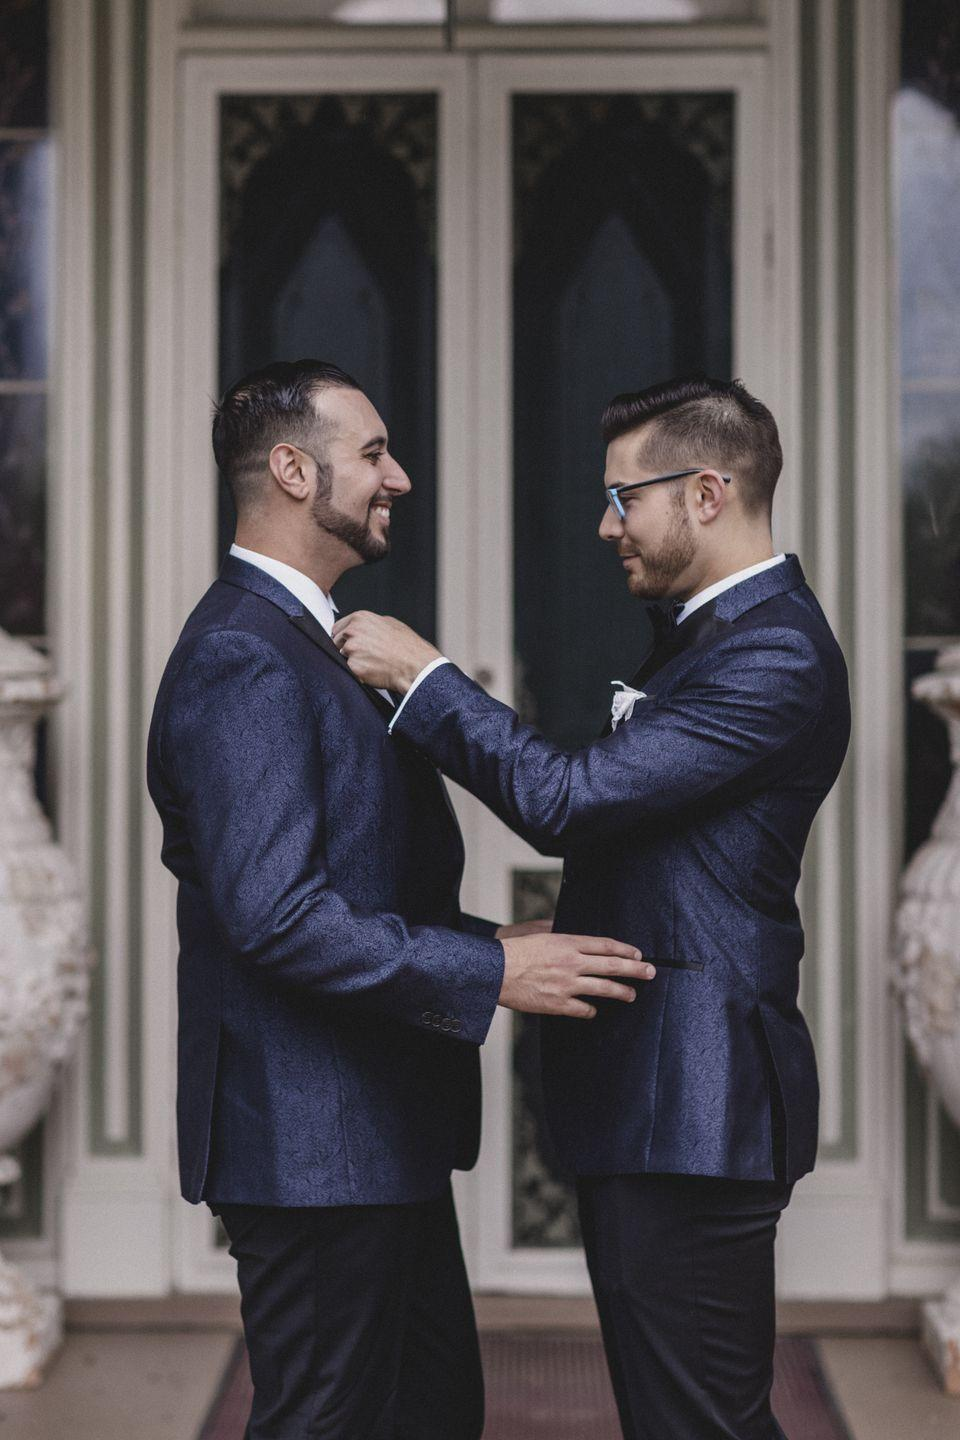 <p>The weather held out just long enough for the guests to arrive to the wedding in a small coastal town in Maryland on May 6, 2017. Everyone danced the night away and munched on the couple's signature honey whiskey cake, which they sell through their joint business, The Brooklyn Baking Barons. </p>